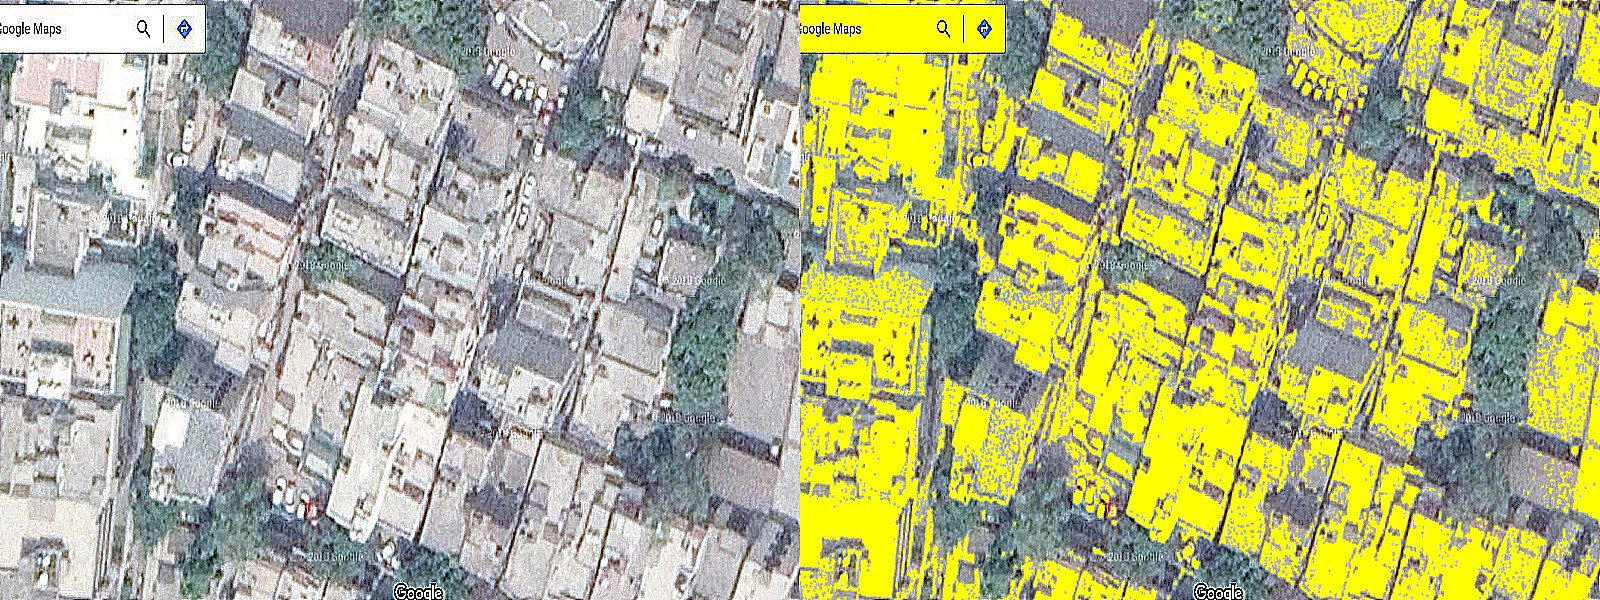 Image of Delhi rooftops for understanding the algorithm